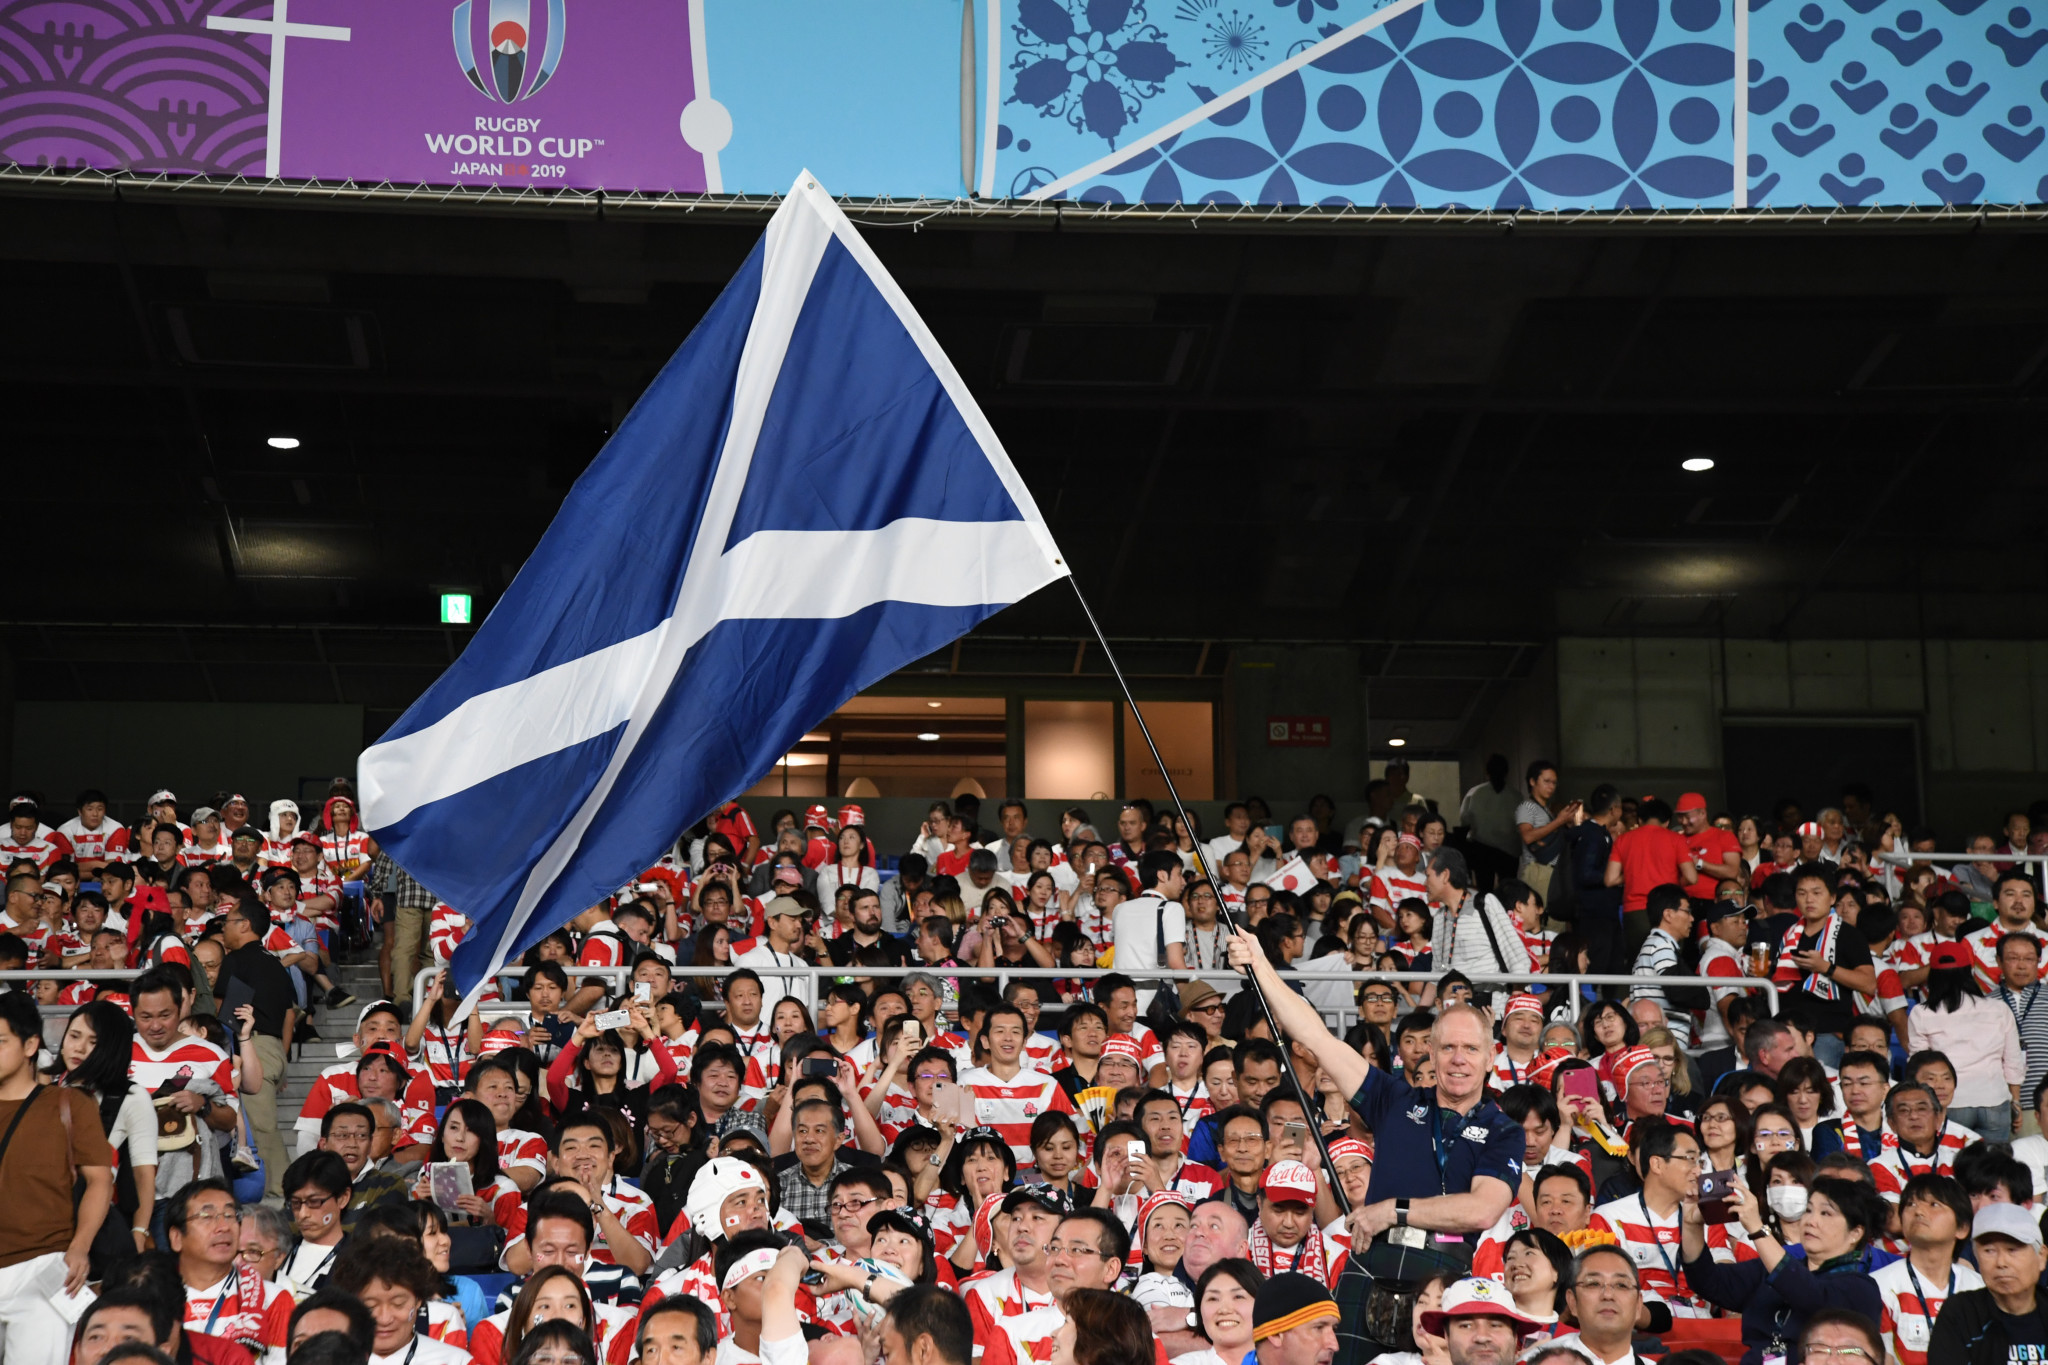 Scottish Rugby Union fined £70,000 over Typhoon Hagibis comments